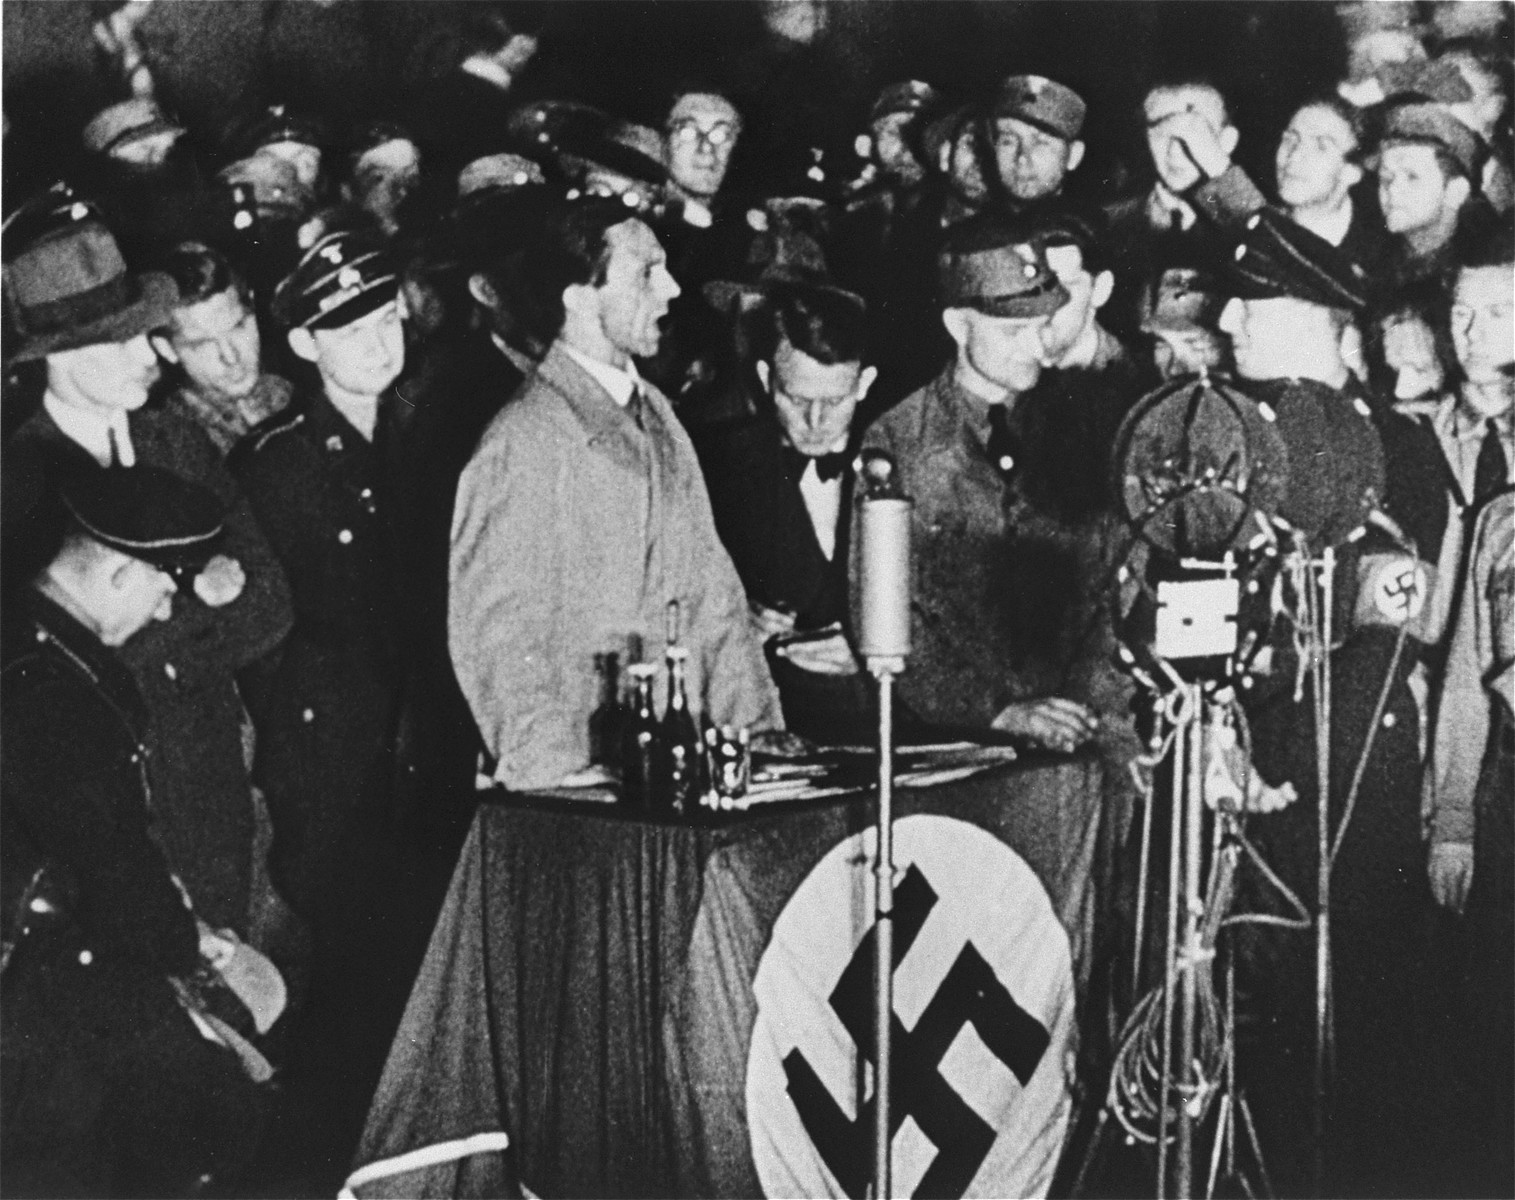 Reich Minister for Public Enlightenment and Propaganda, Joseph Goebbels, delivers a speech during the book burning on the Opernplatz in Berlin.   Still from a motion picture.